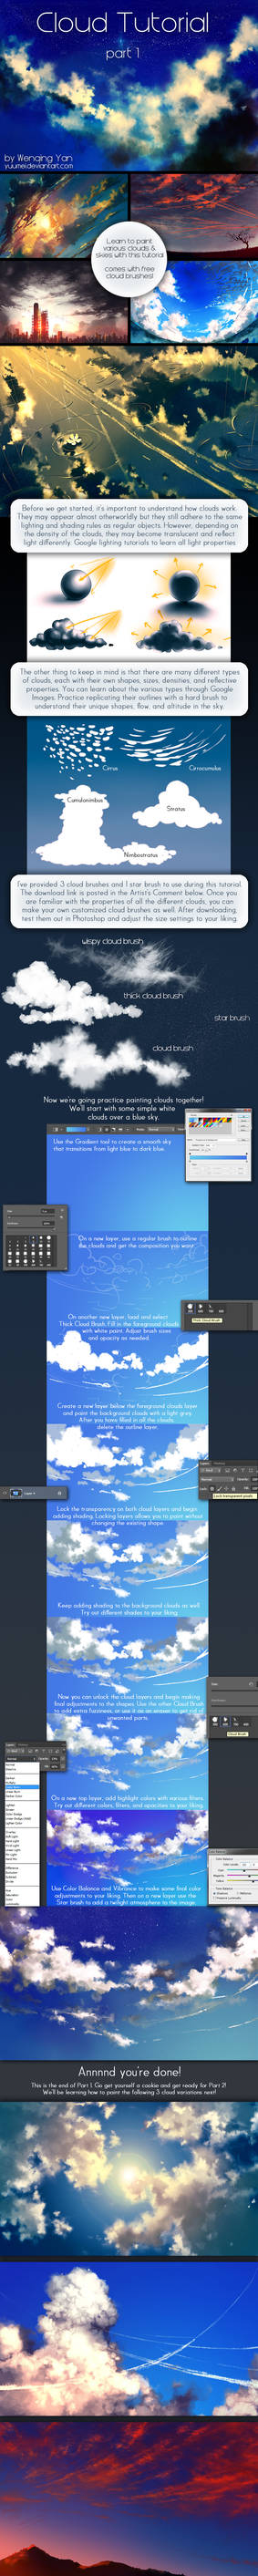 Cloud Tutorial Part 1